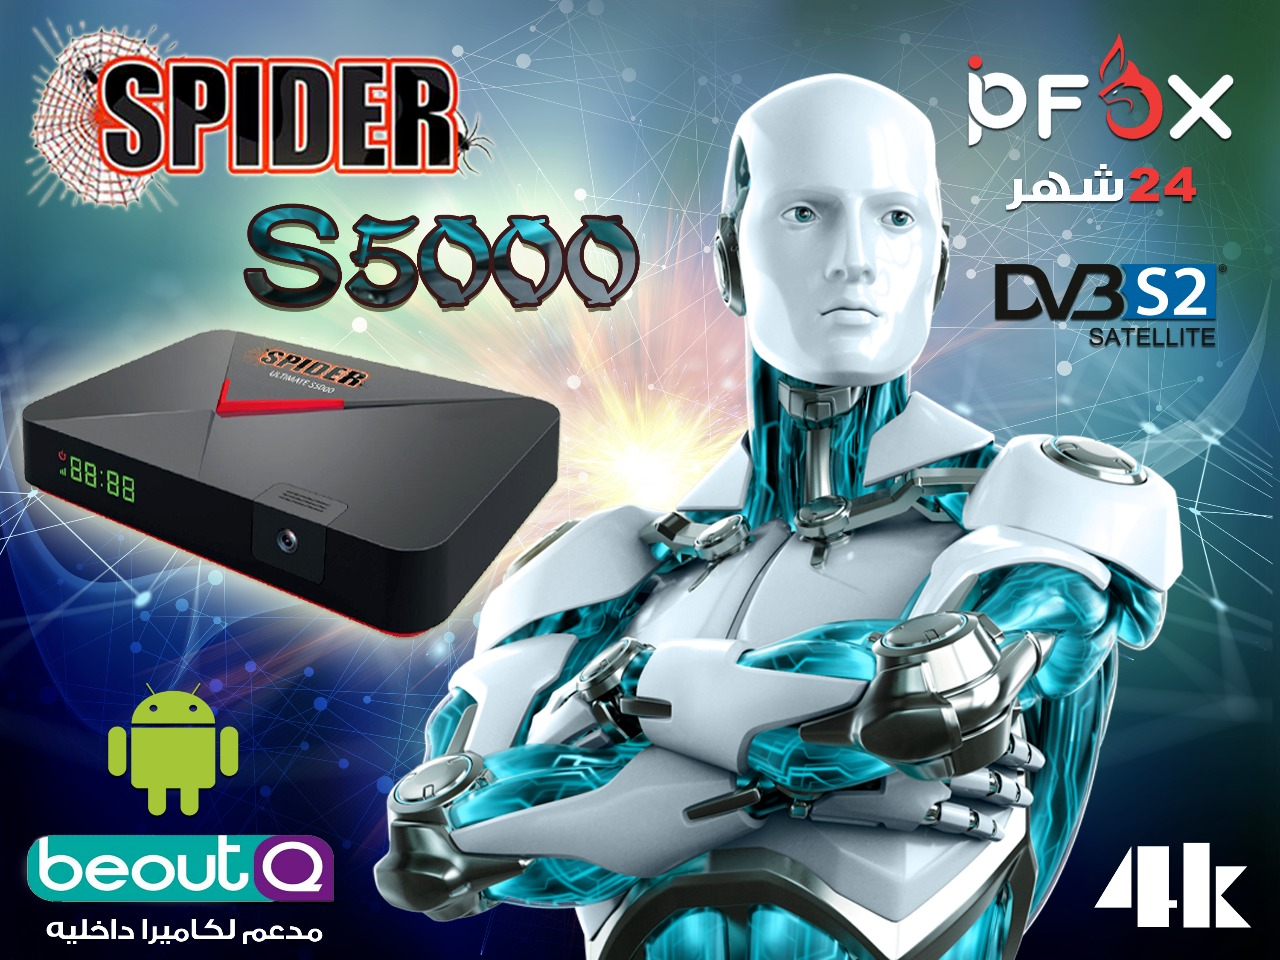 SPIDER S5000 ANDROID HD RECEIVER NEW SOFTWARE ~ Dish Group